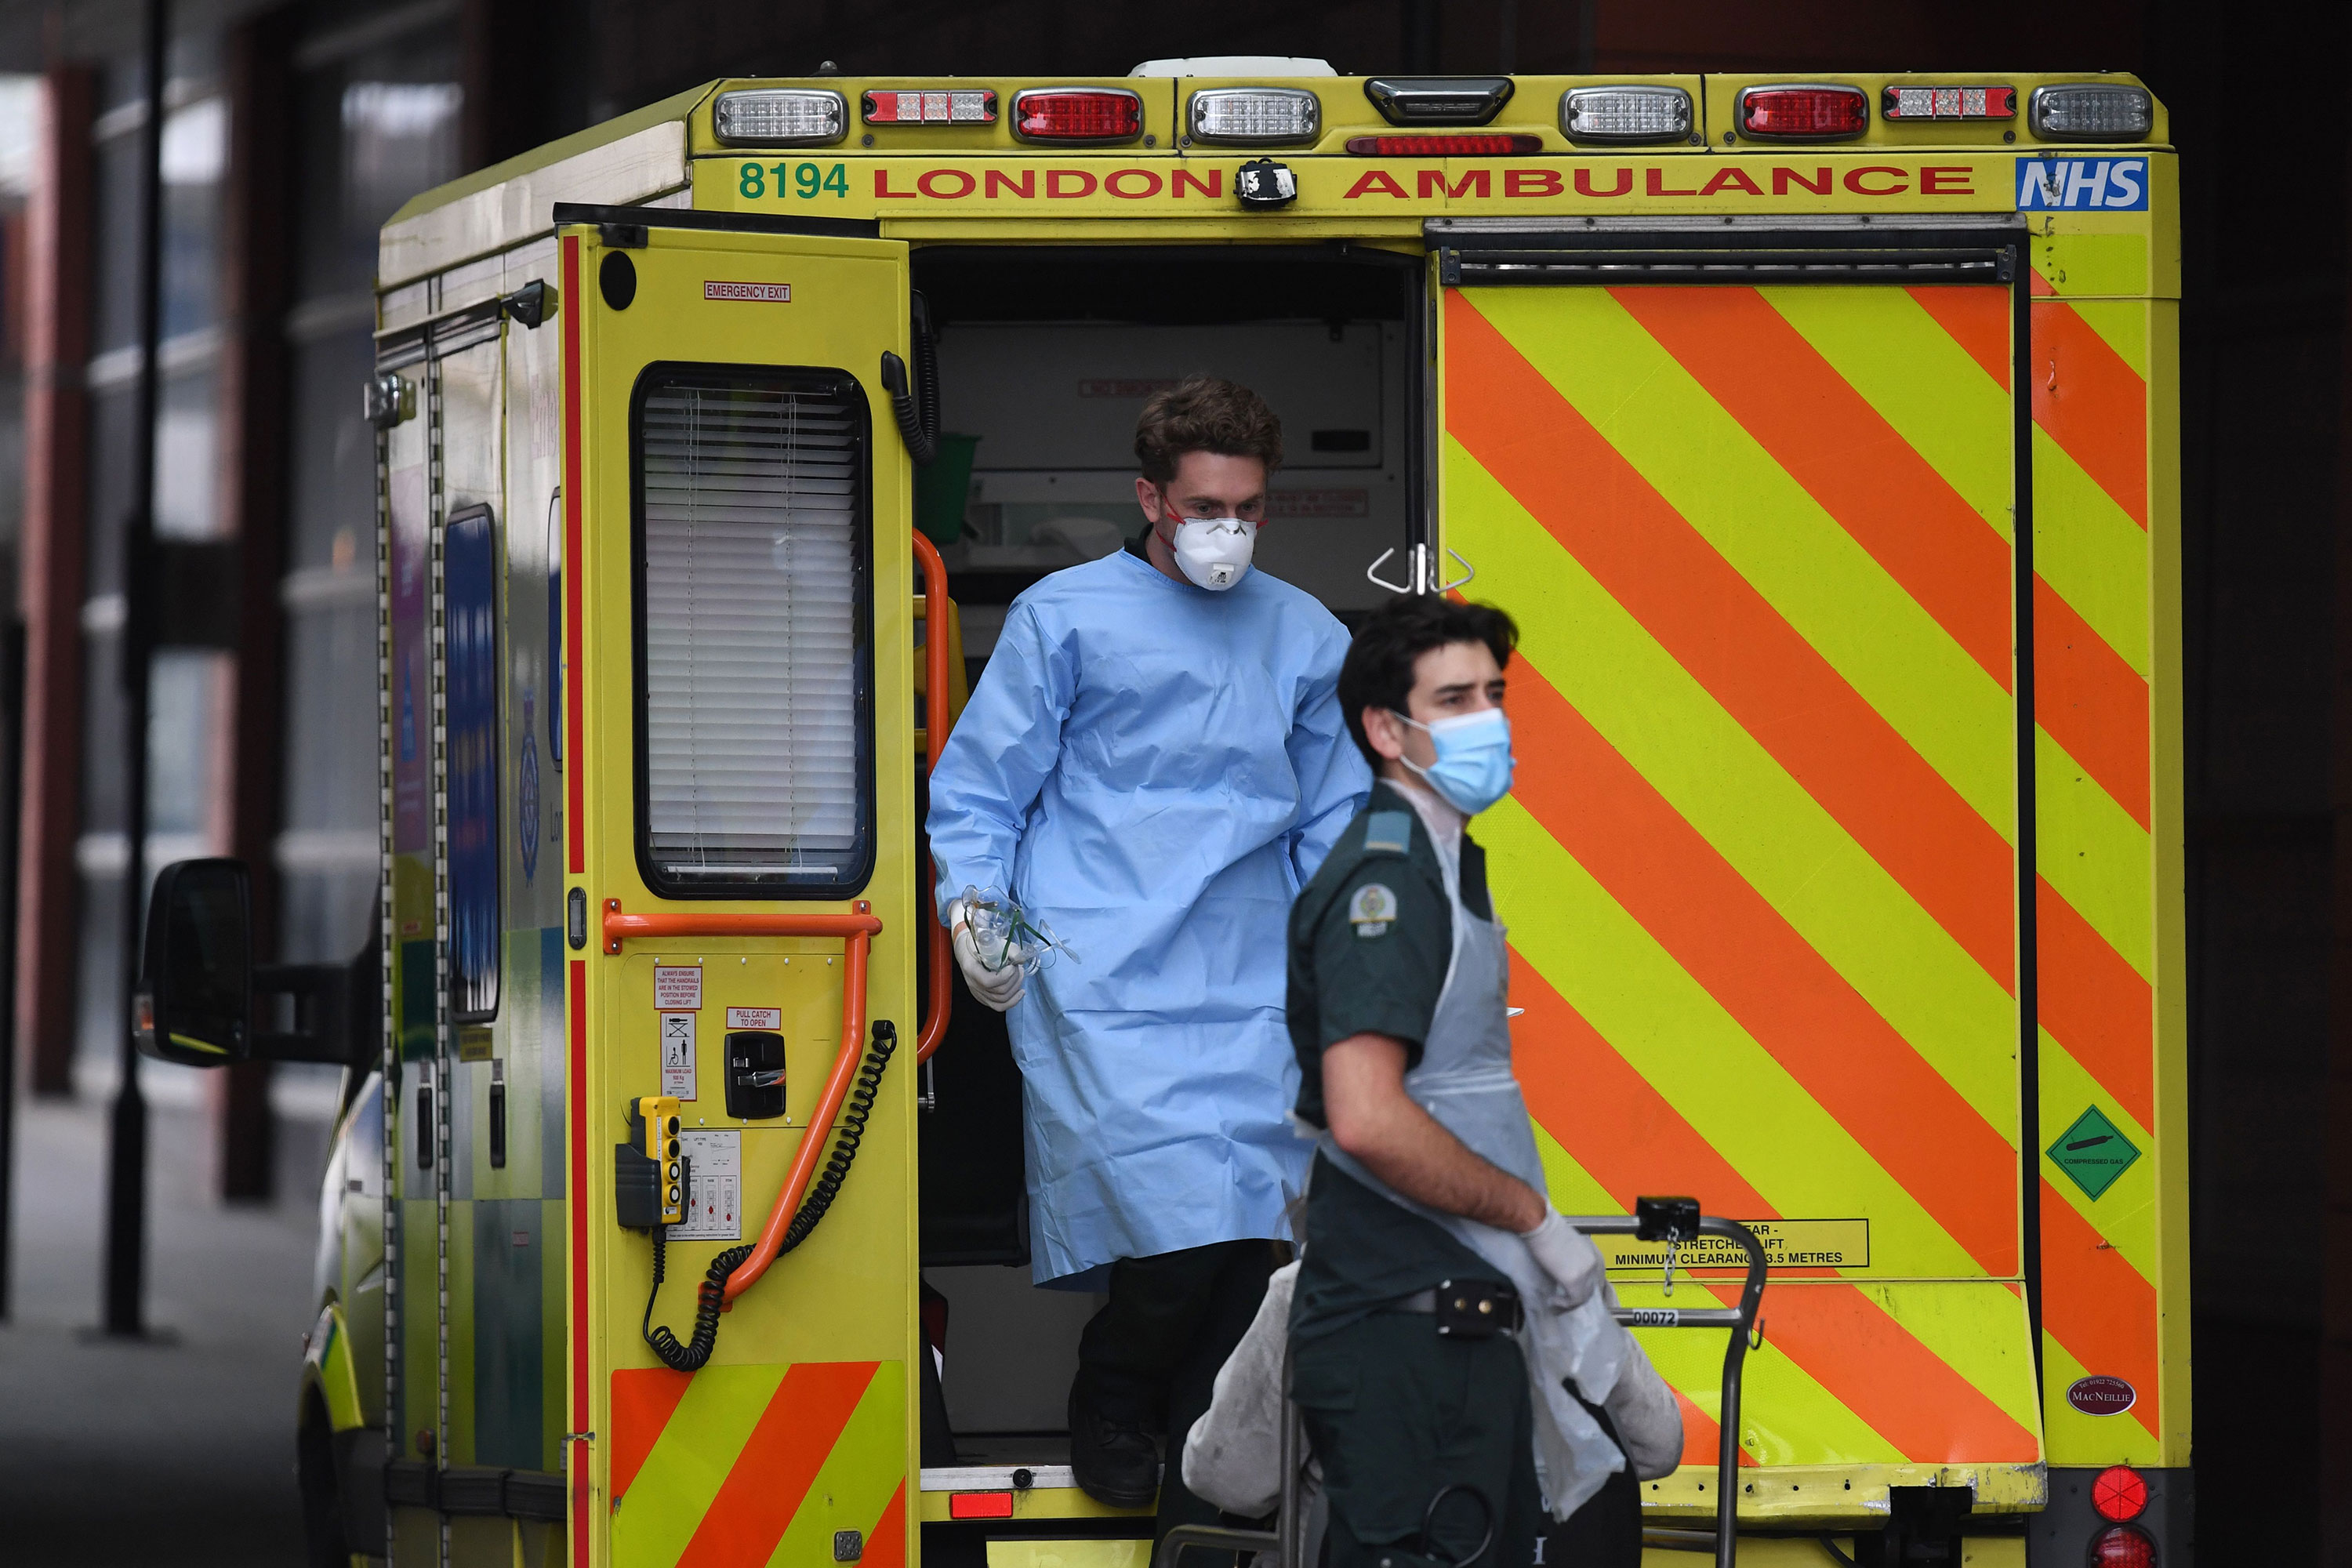 Paramedics wearing personal protective equipment help a patient from an ambulance into the Royal London Hospital on April 18.